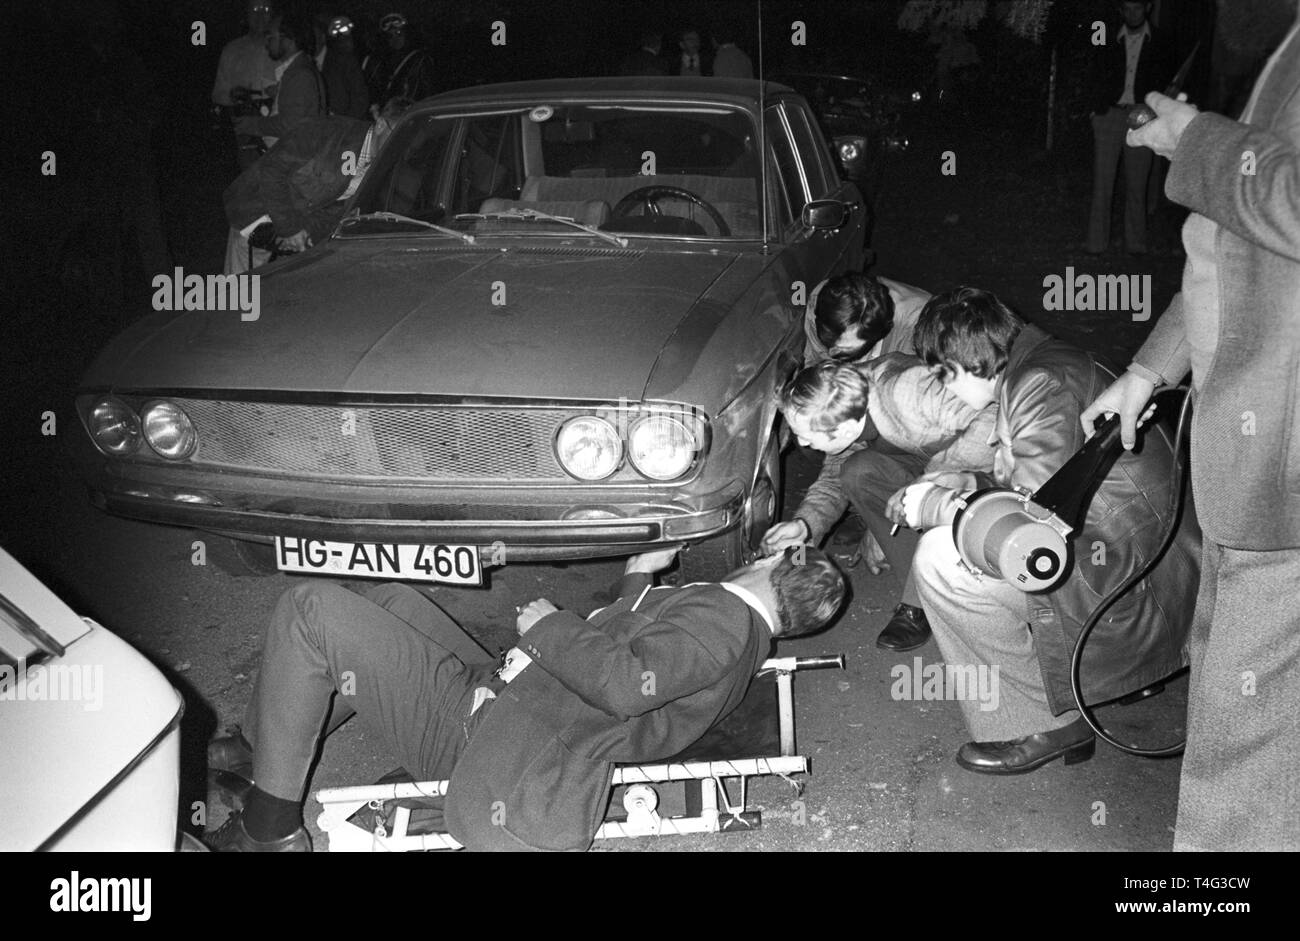 The car (Audi 100) with the corpse of murdered Hanns Martin Schleyer was found in the Alsacian town Mulhouse (France) on the 19 October 1977. He was kidnapped by german terrorist group RAF on 5 September. | usage worldwide - Stock Image